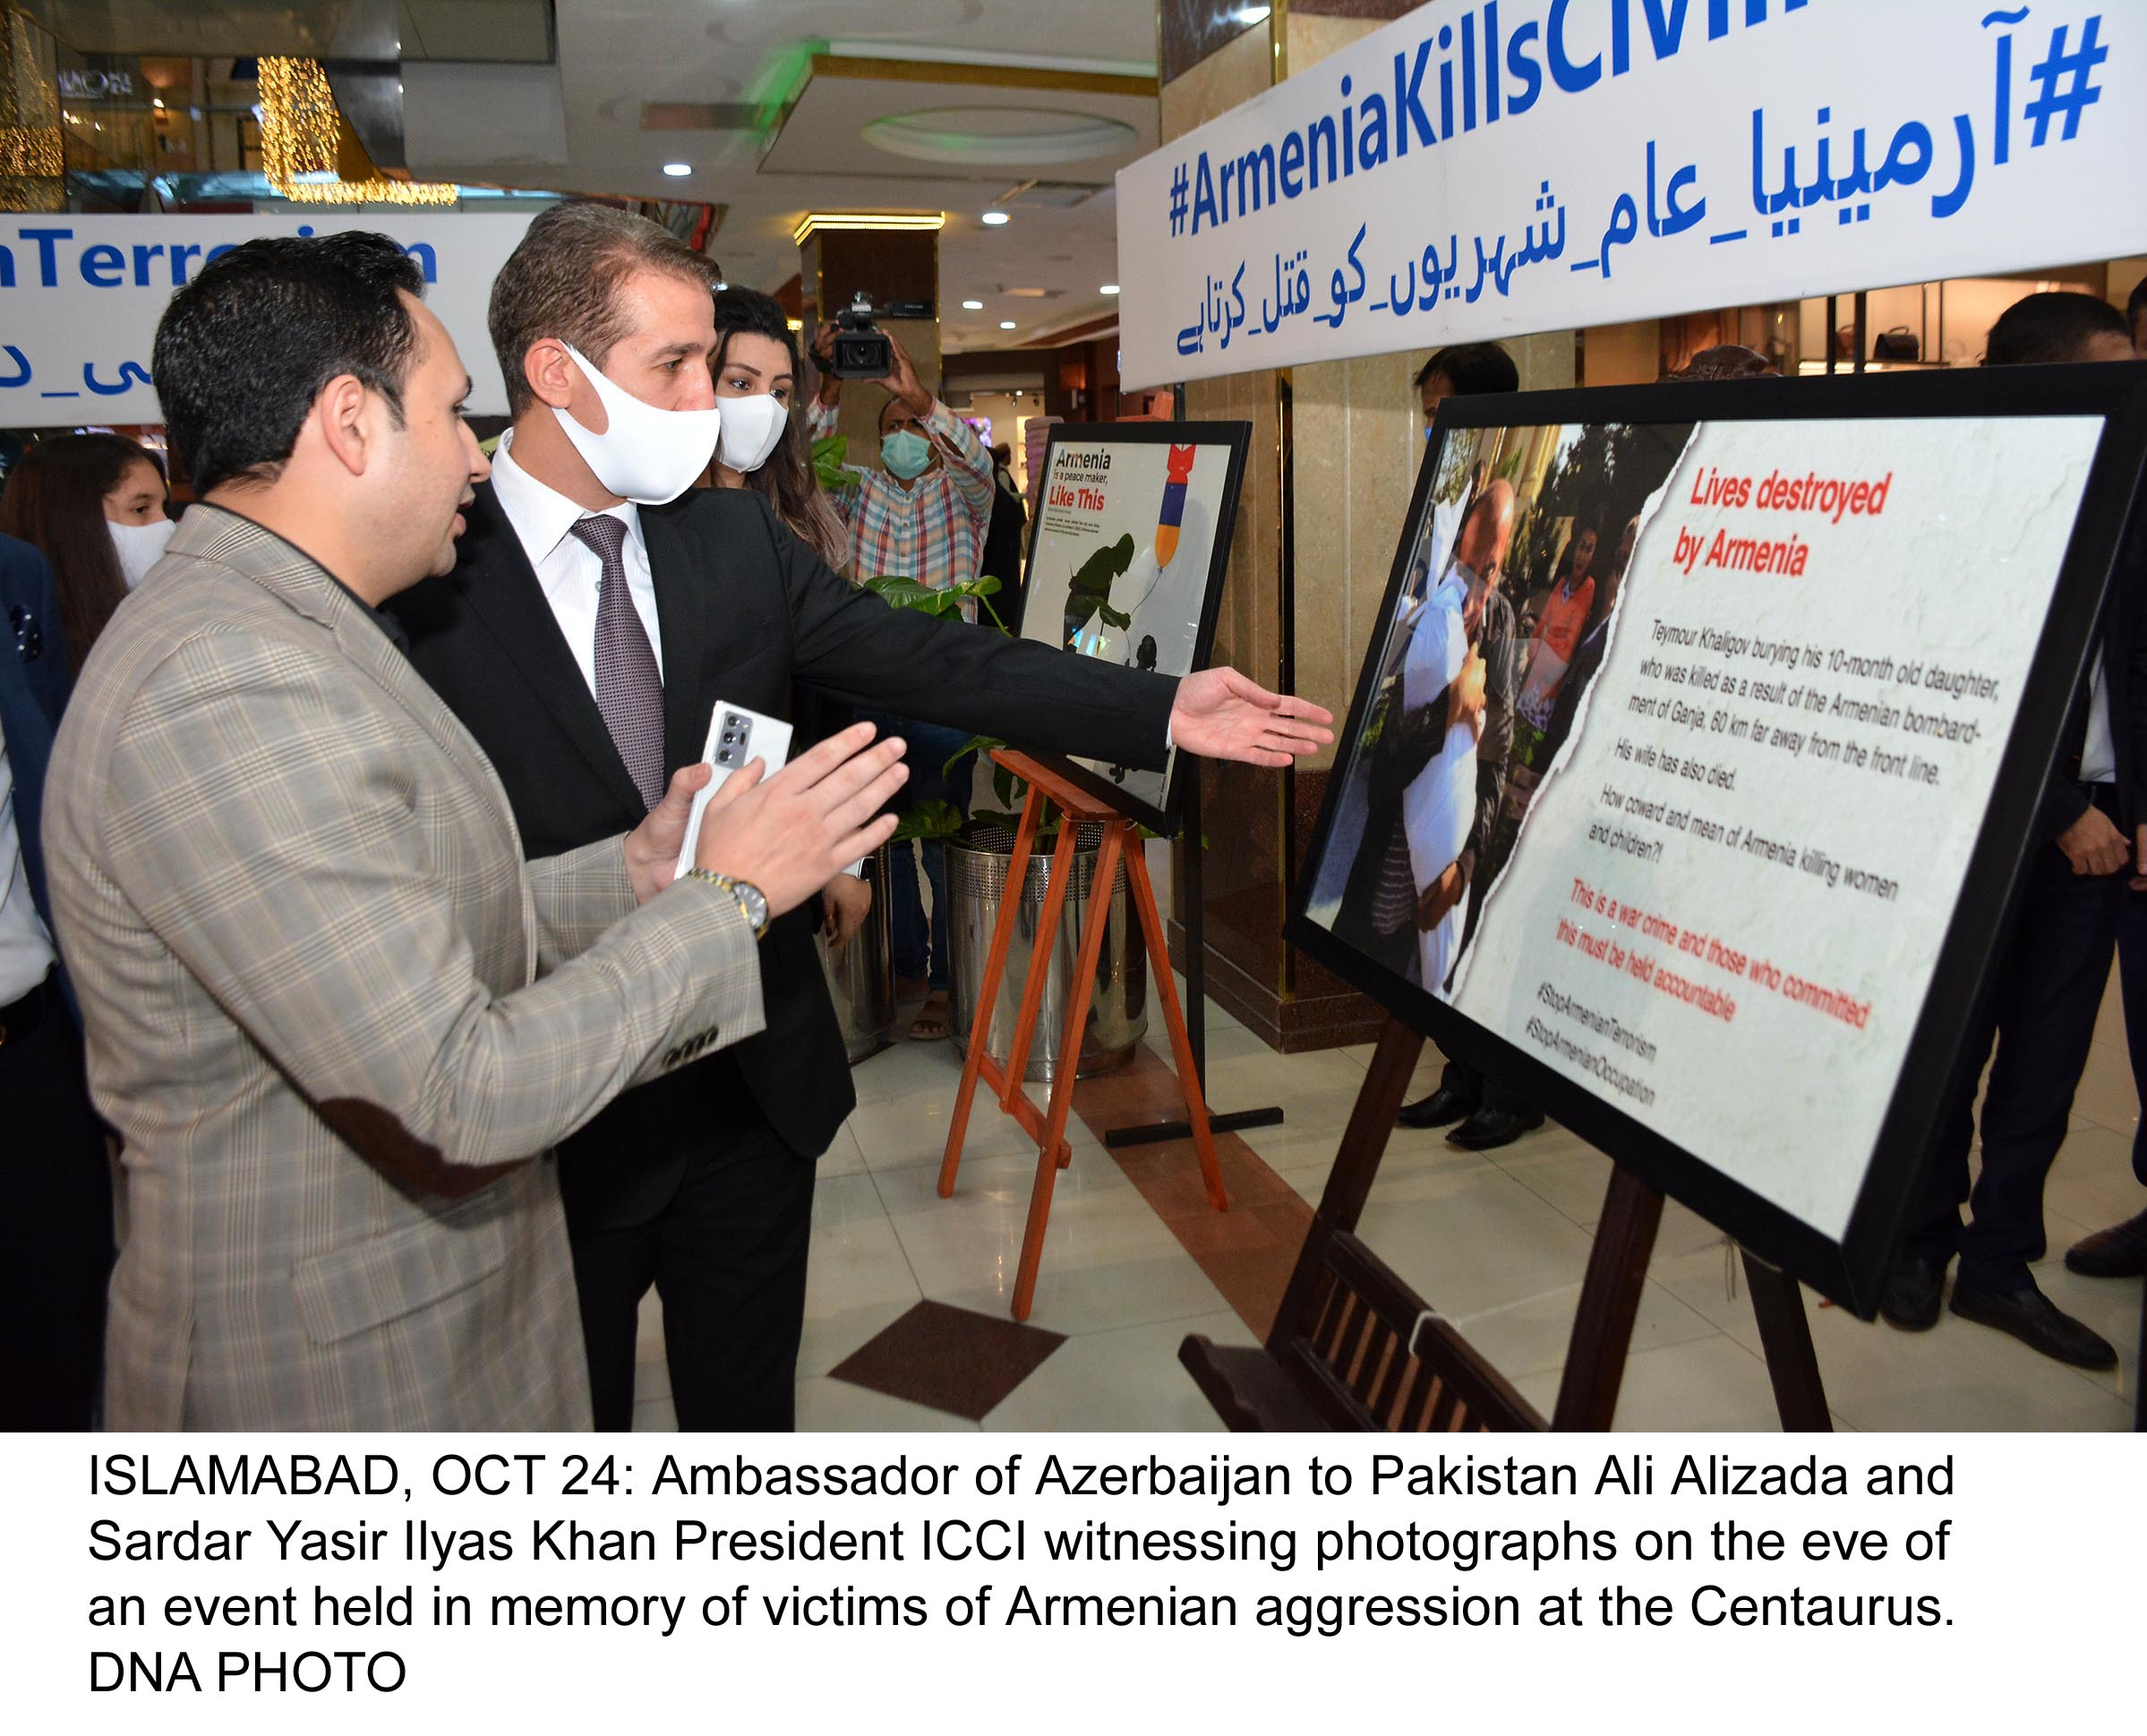 ISLAMABAD, OCT 24: Ambassador of Azerbaijan to Pakistan Ali Alizada and Sardar Yasir Ilyas Khan President ICCI witnessing photographs on the eve of an event held in memory of victims of Armenian aggression at the Centaurus. DNA PHOTO